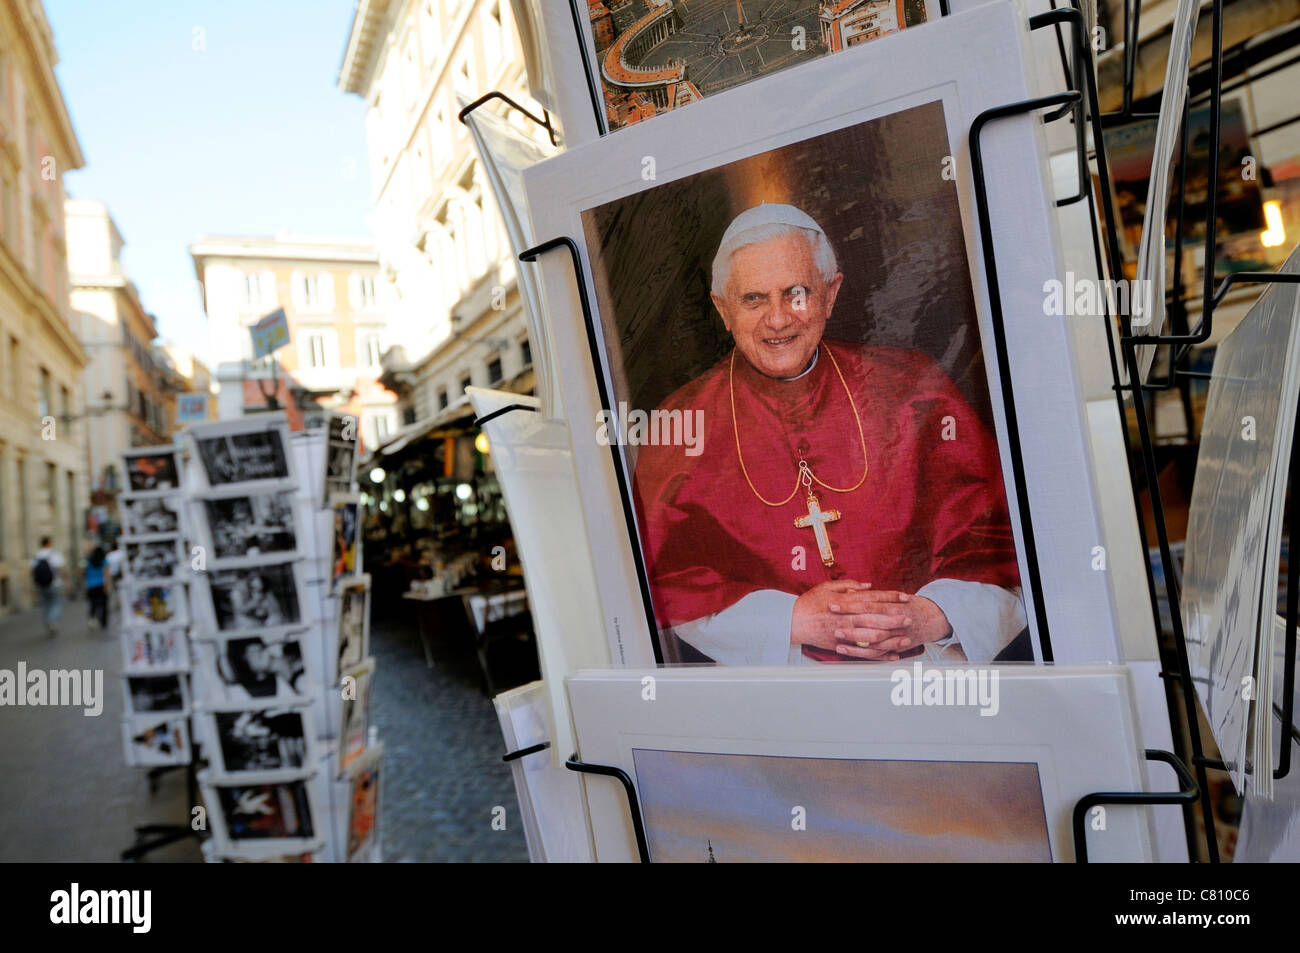 Pope Benedict XVI postcard in a rack, Rome, Italy, Europe - Stock Image